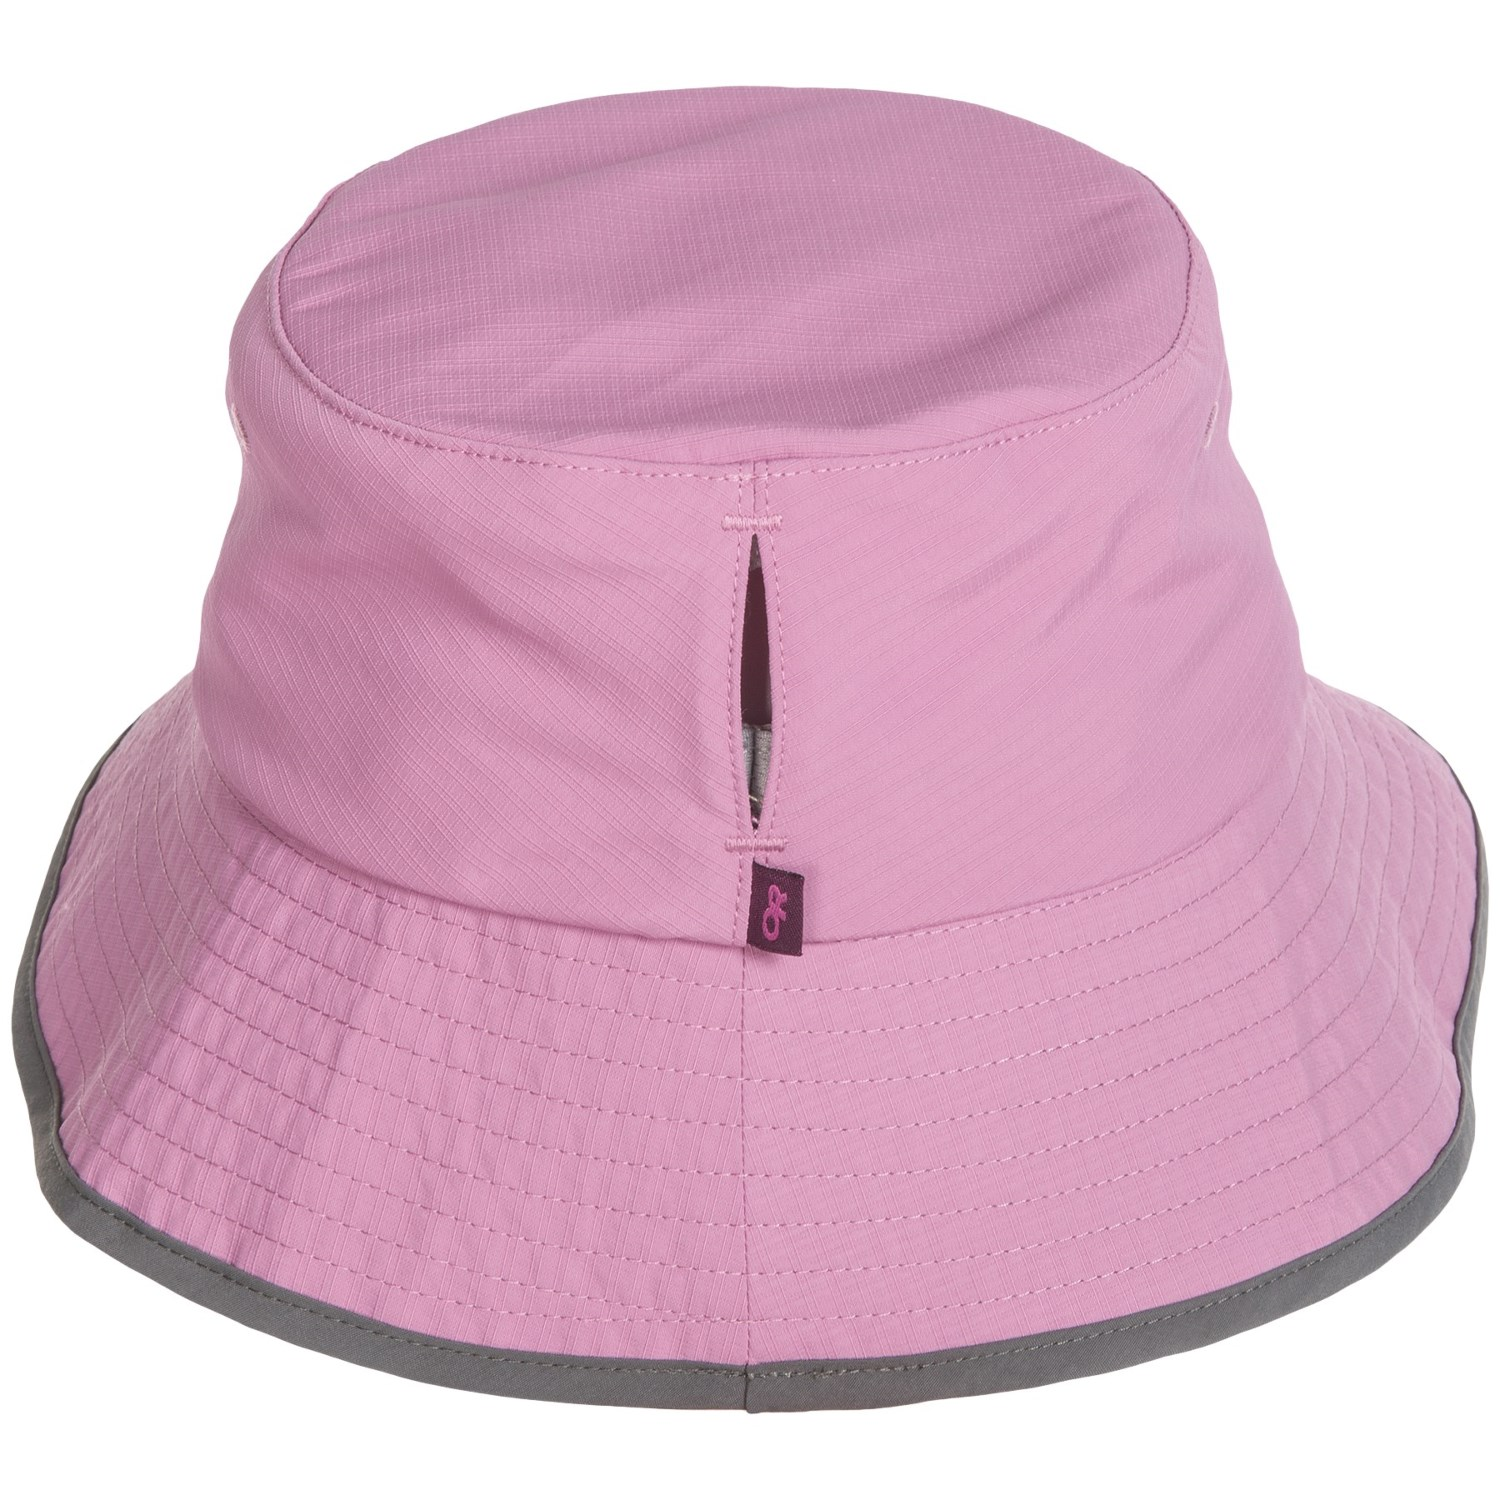 4a47b336e3780 Outdoor Research Solaris 13 Bucket Hat (For Women) - Save 48%